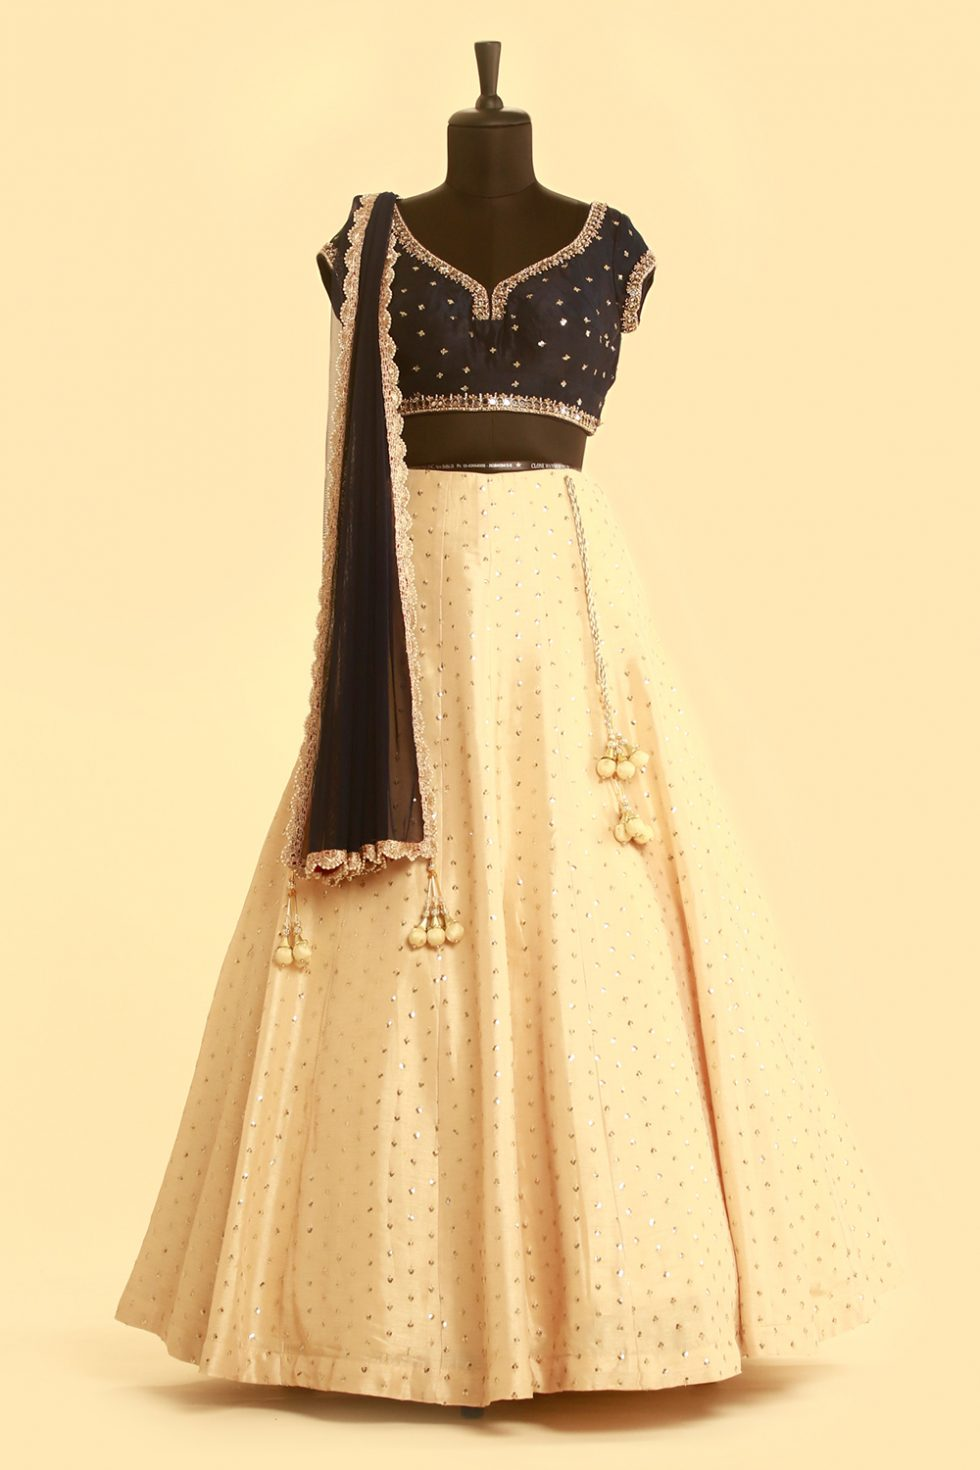 Contrast deep blue and beige lehenga set with mirror highlights and gold embellishments